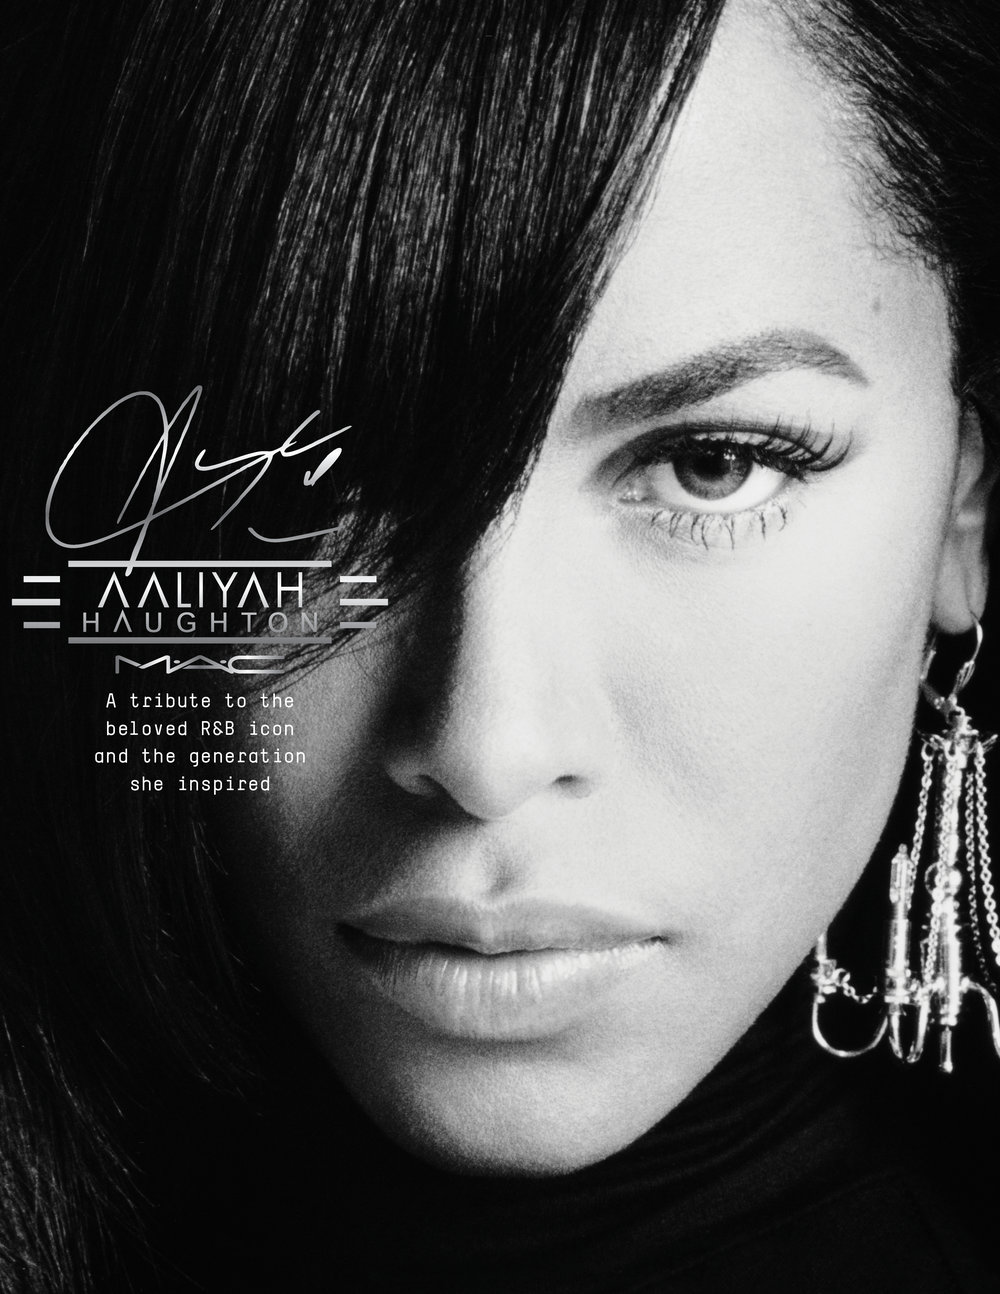 342333d0bc-AALIYAH_BEAUTY_INTERNATIONAL_RGB_300.jpg